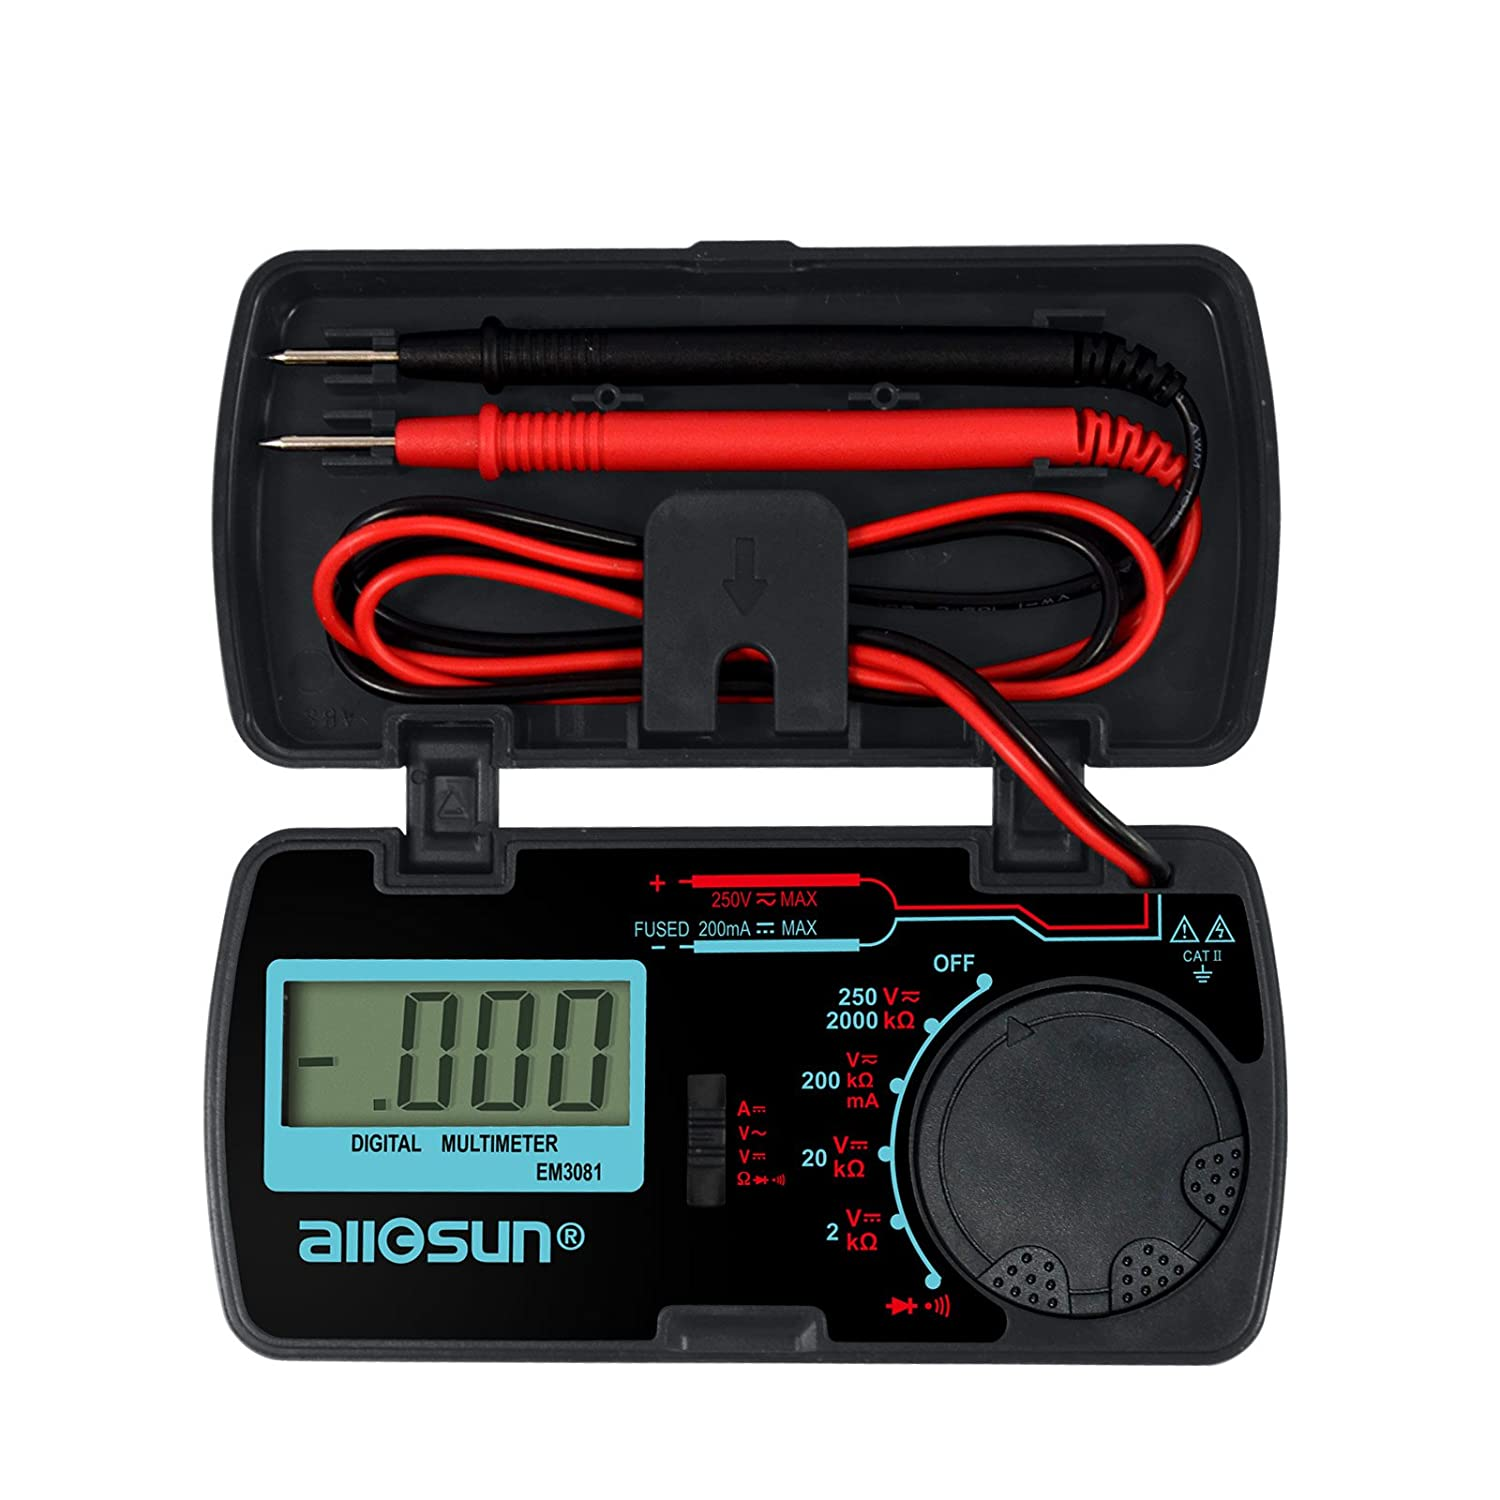 All Sun Digital Multimeter Dmm Multi Tester Amp Ohm Volt Meter Diode Measurements Electronic And Continuity Test Pocket Size